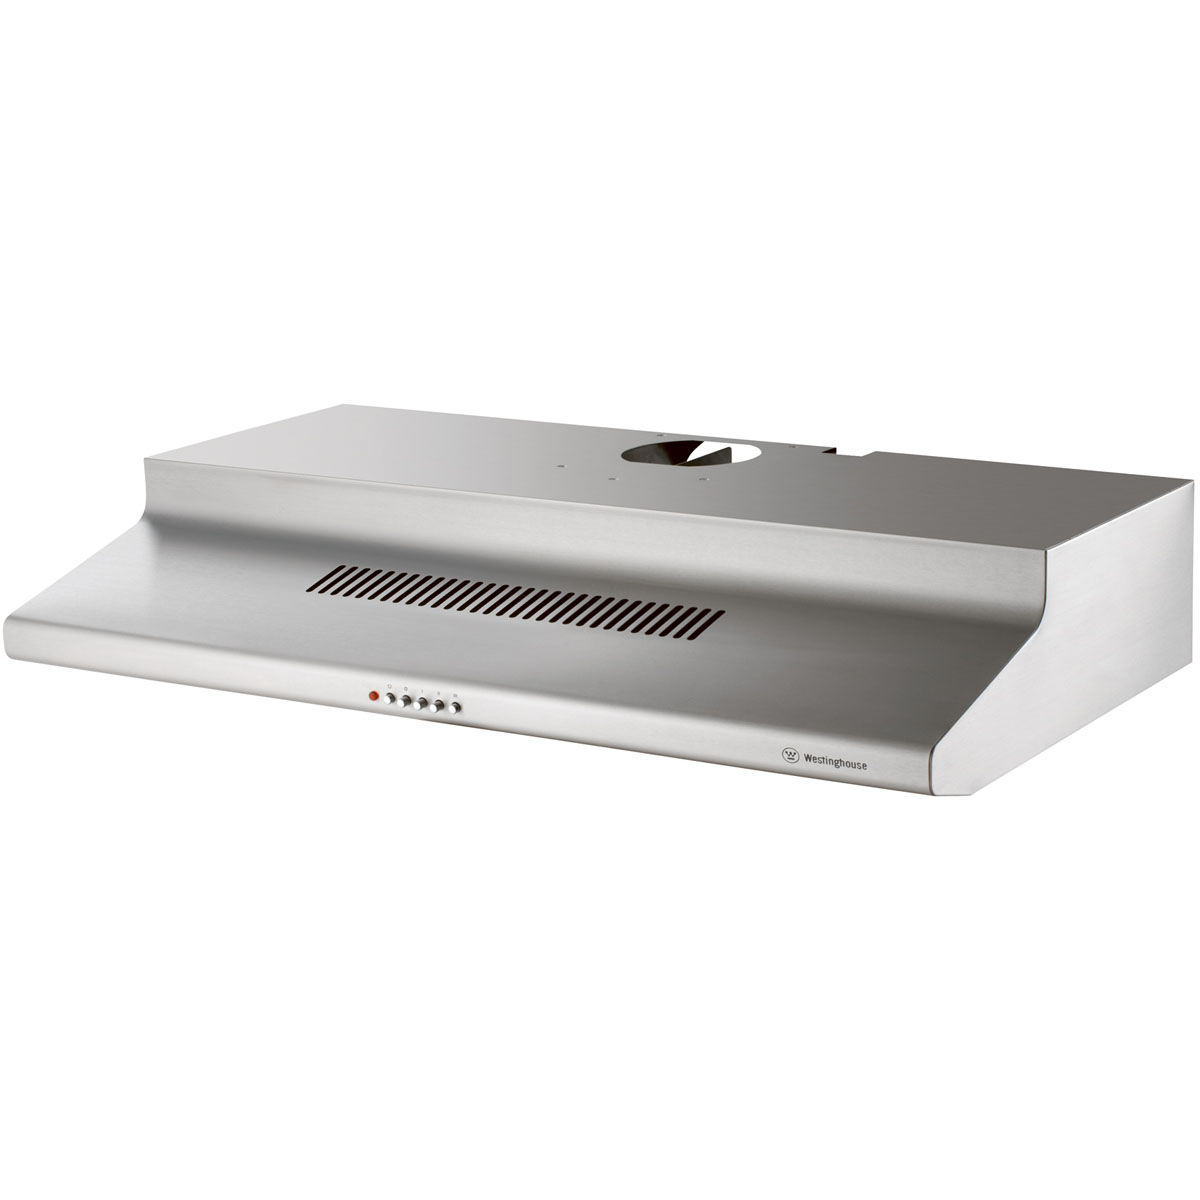 Westinghouse Fixed Rangehood WRJ911USS